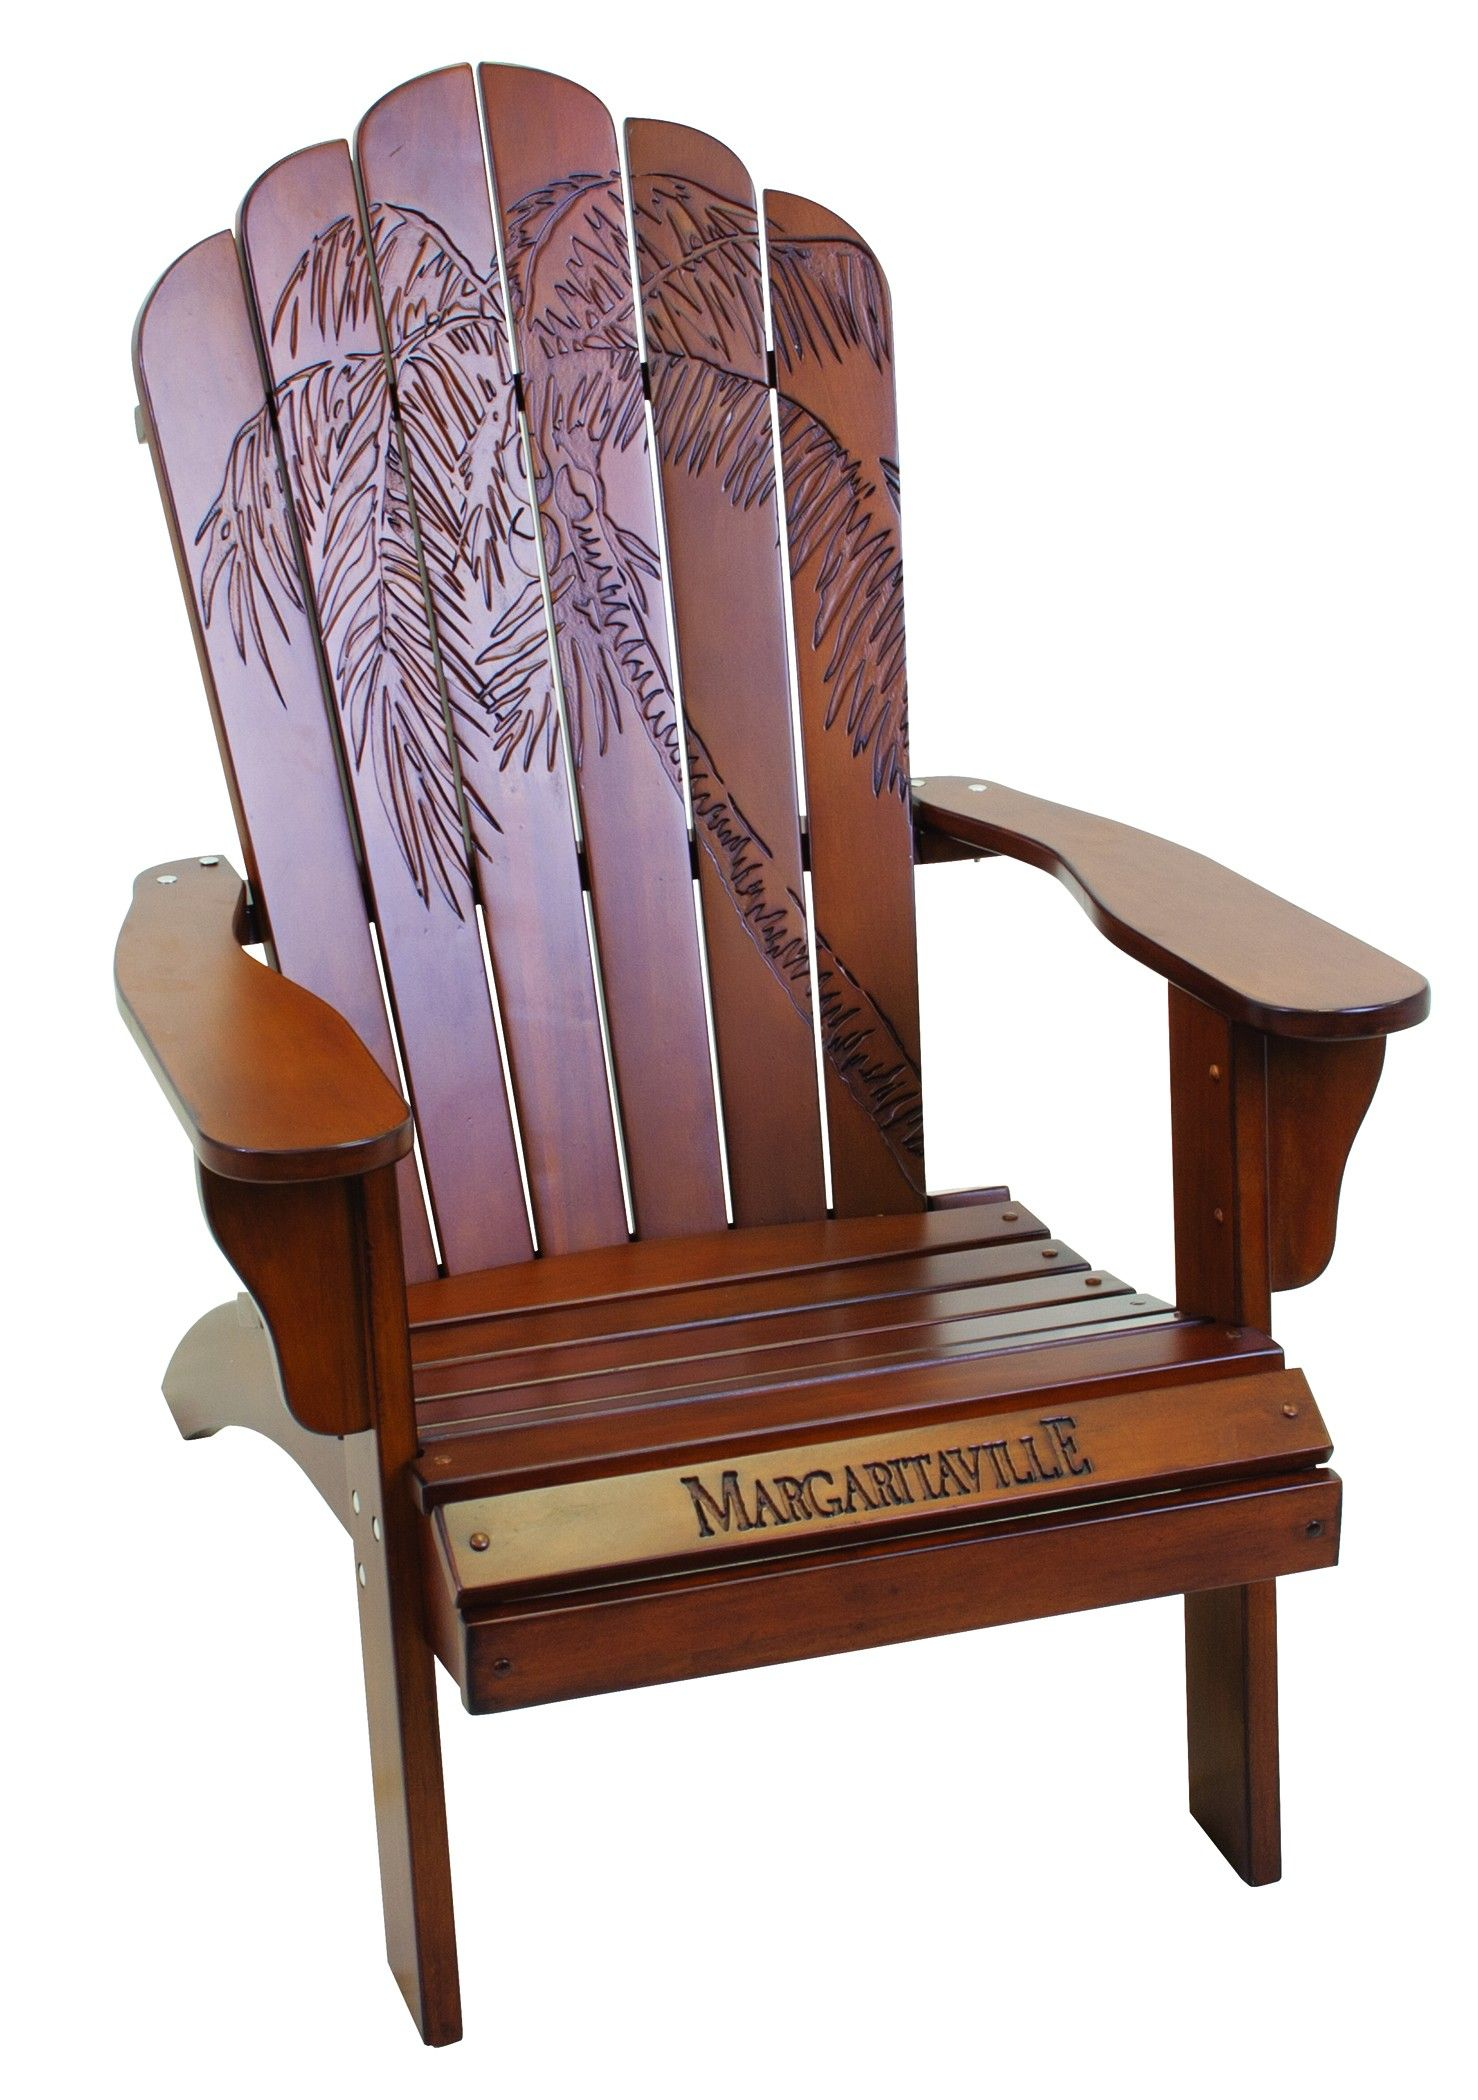 adirondack chair sale cover hire scotland margaritaville for wood carved palm frond cherry